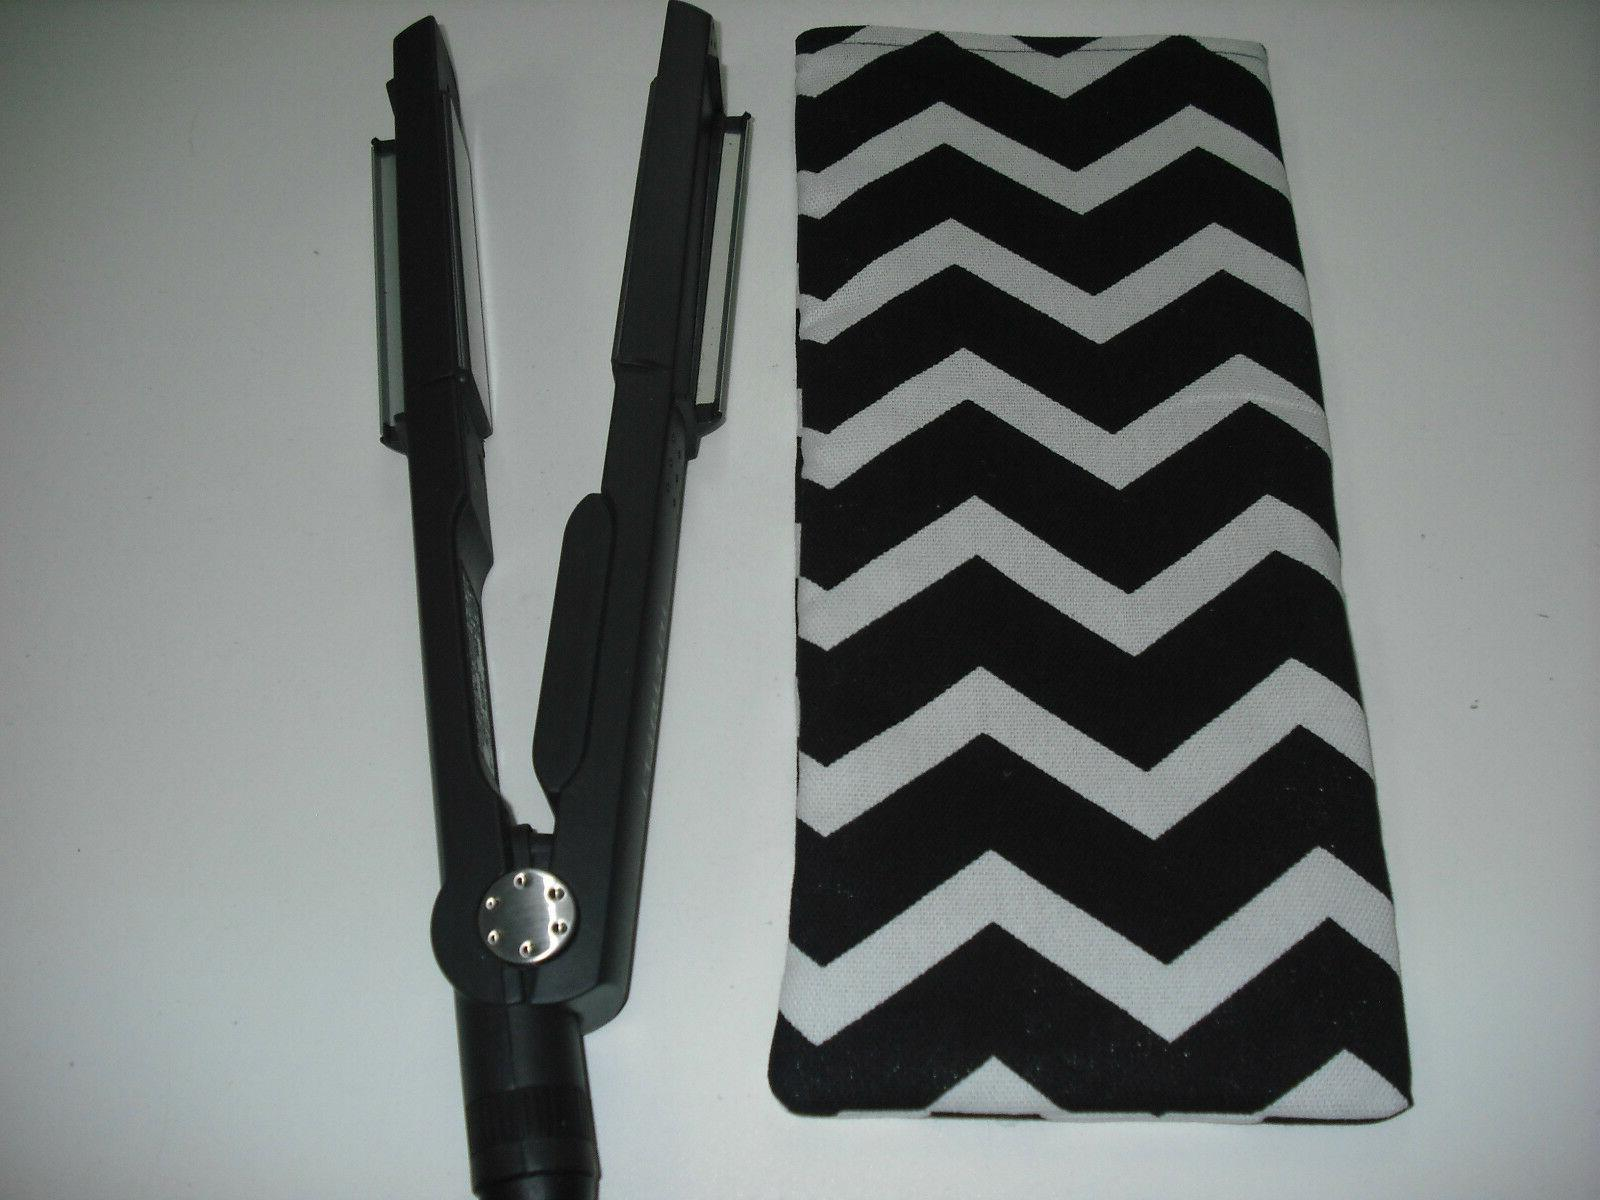 1 flat iron curling iron cover sleeve